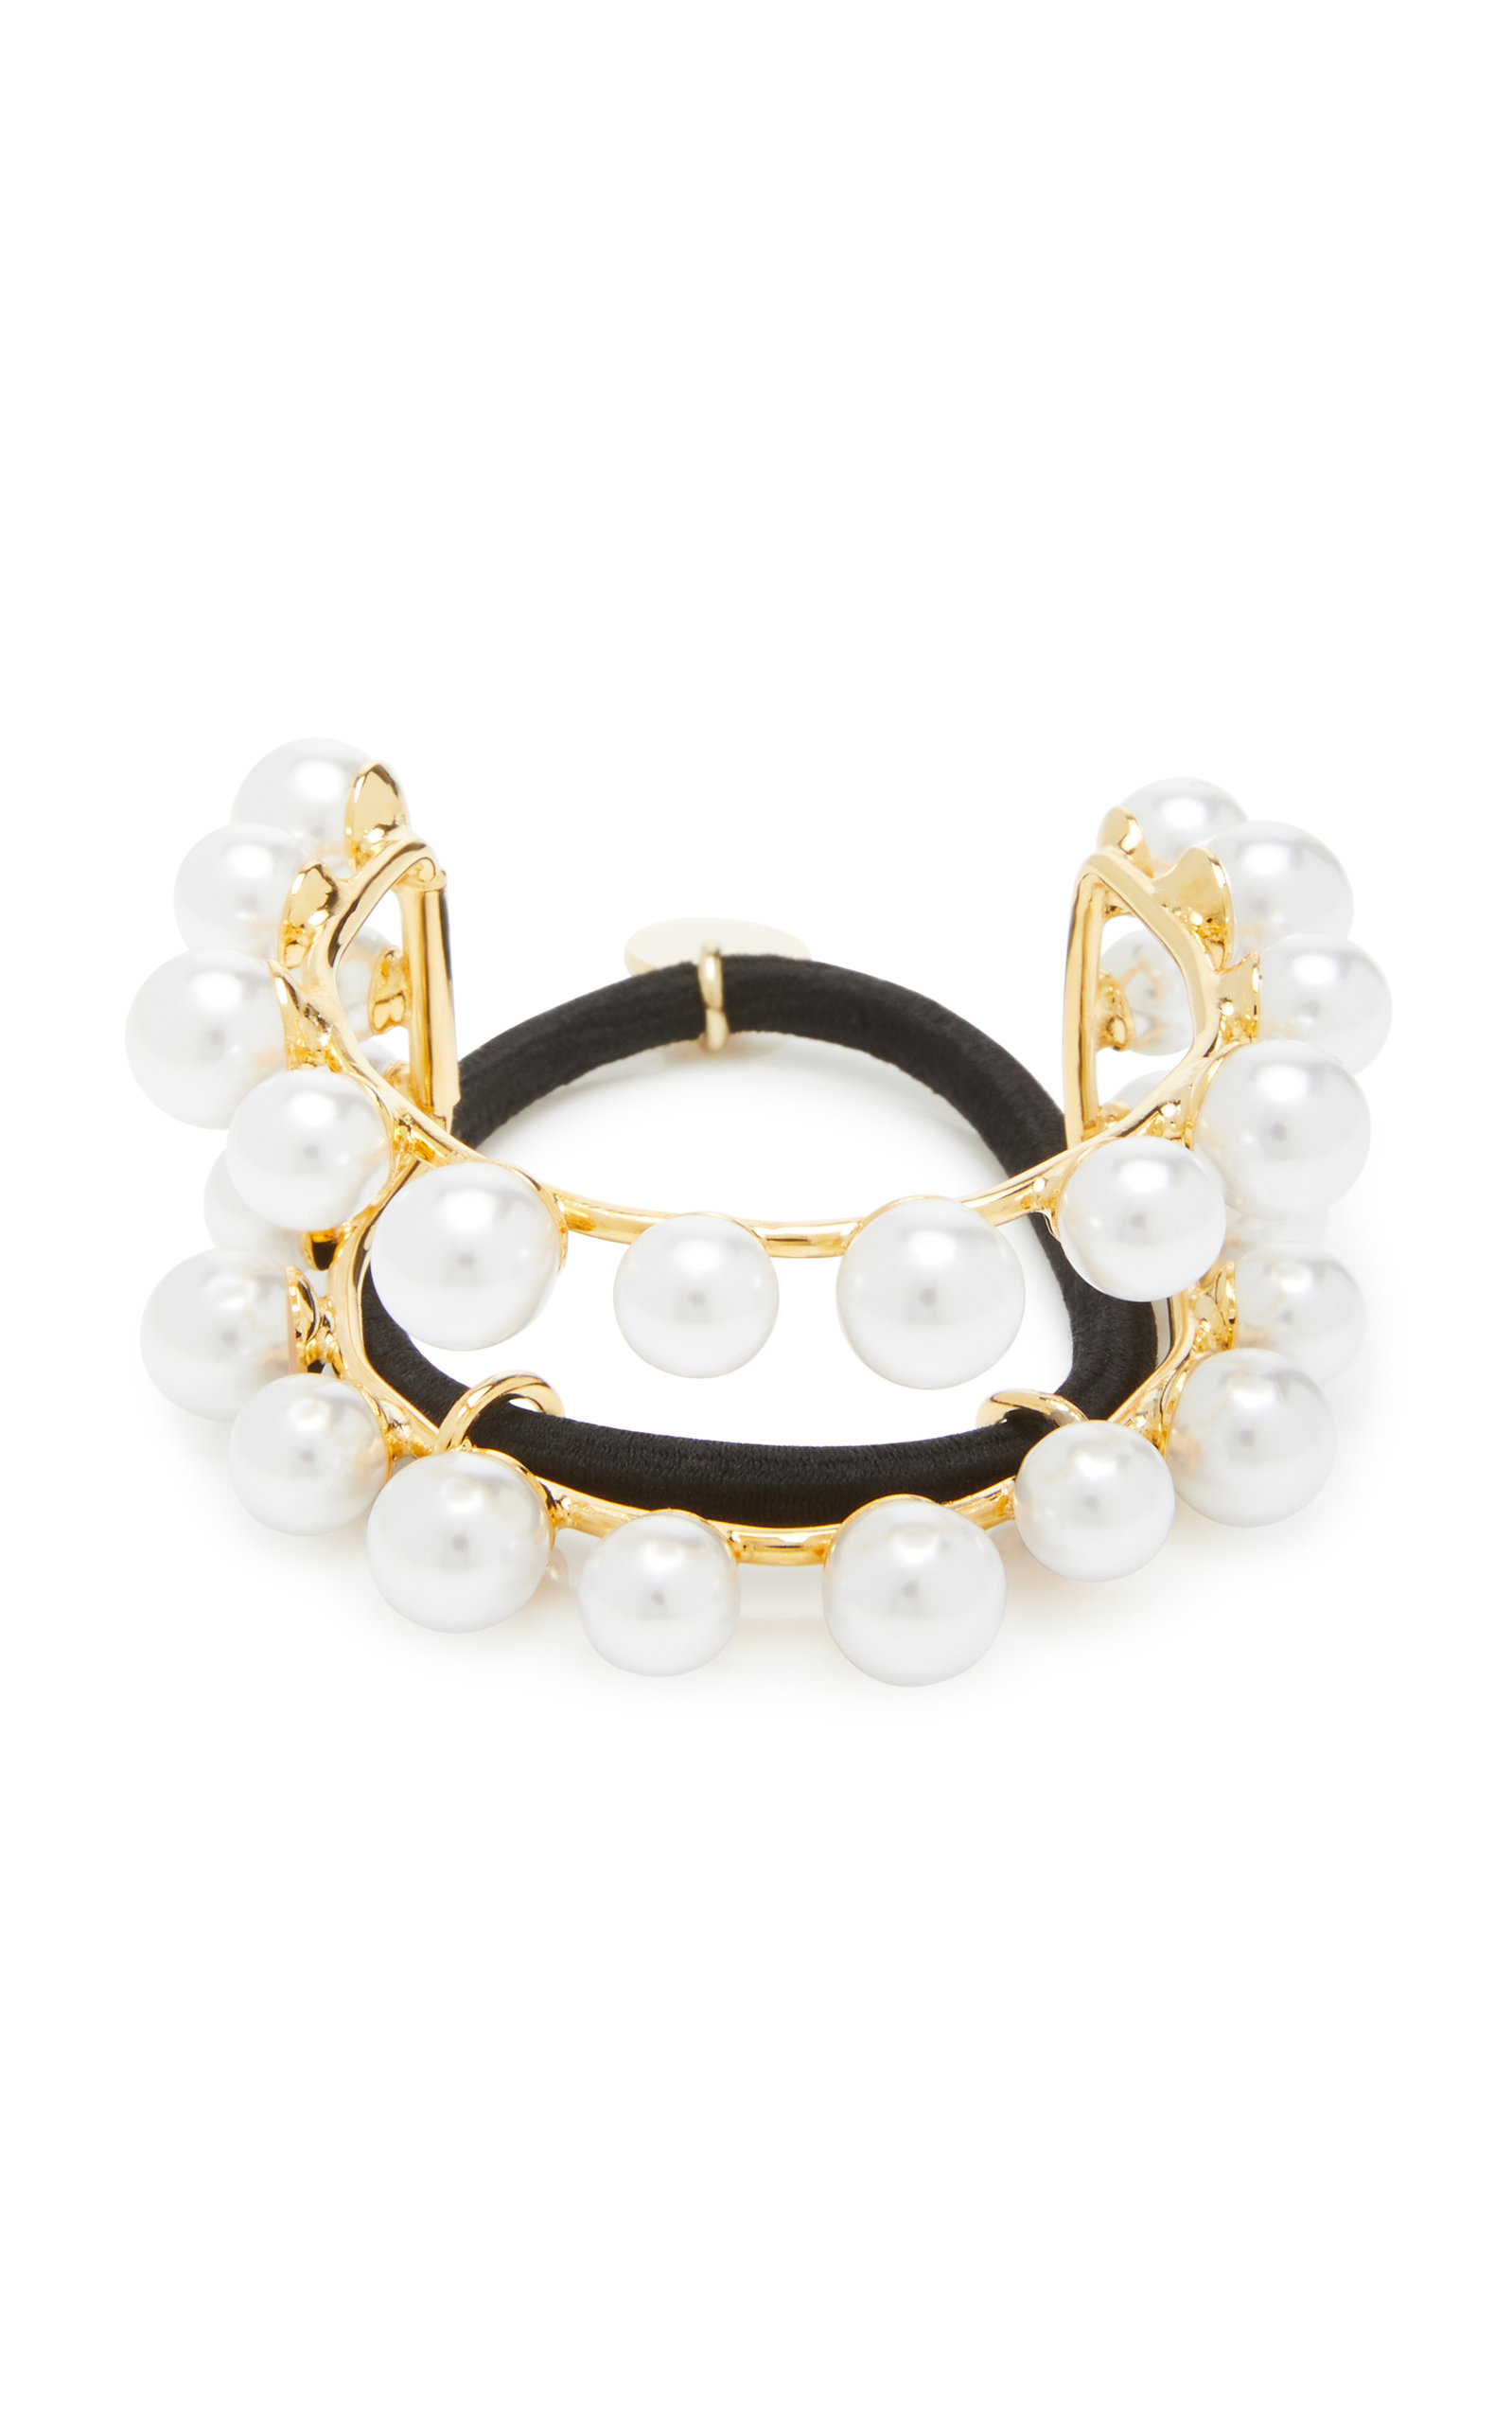 Lelet Ny GOLD-PLATED FAUX PEARL HAIR TIE